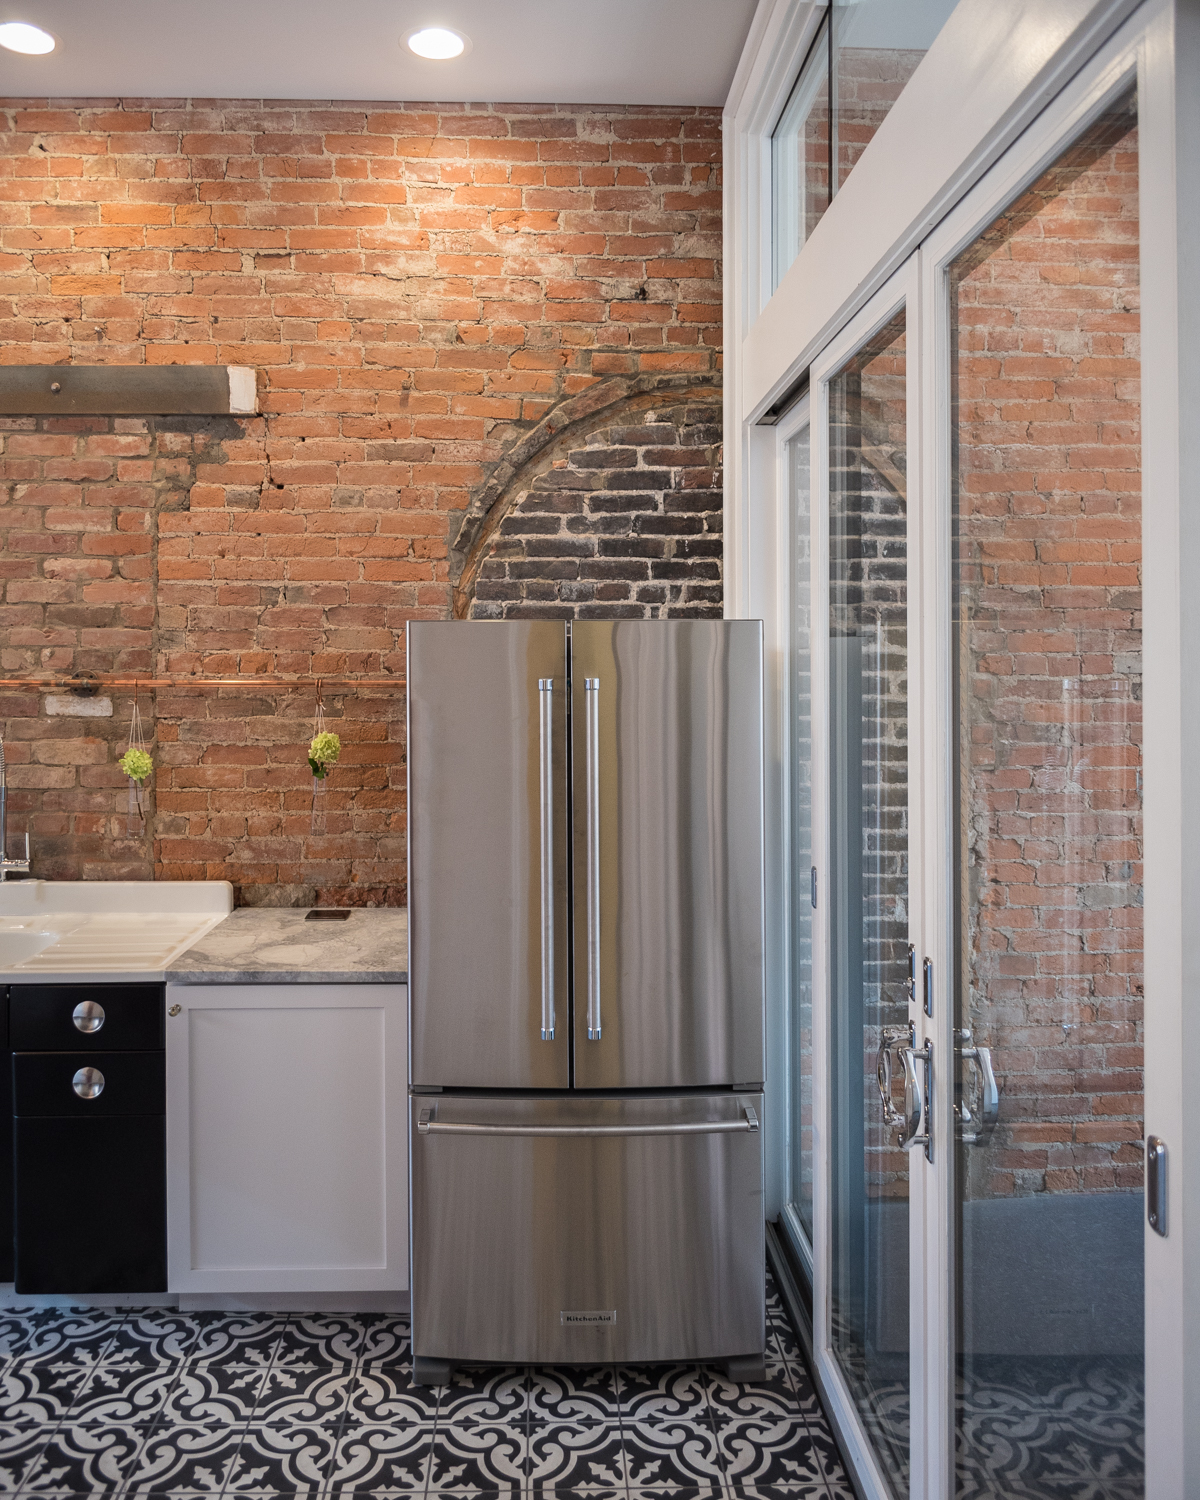 Complete with nine townhomes, Boone Block is Covington's newest living space. It's filled with exposed brick, tall ceilings, and plenty of old & new features. Basically, it's your dream home. / ADDRESS: 406-422 Scott Blvd Covington, KY 41011. // Image: Phil Armstrong, Cincinnati Refined